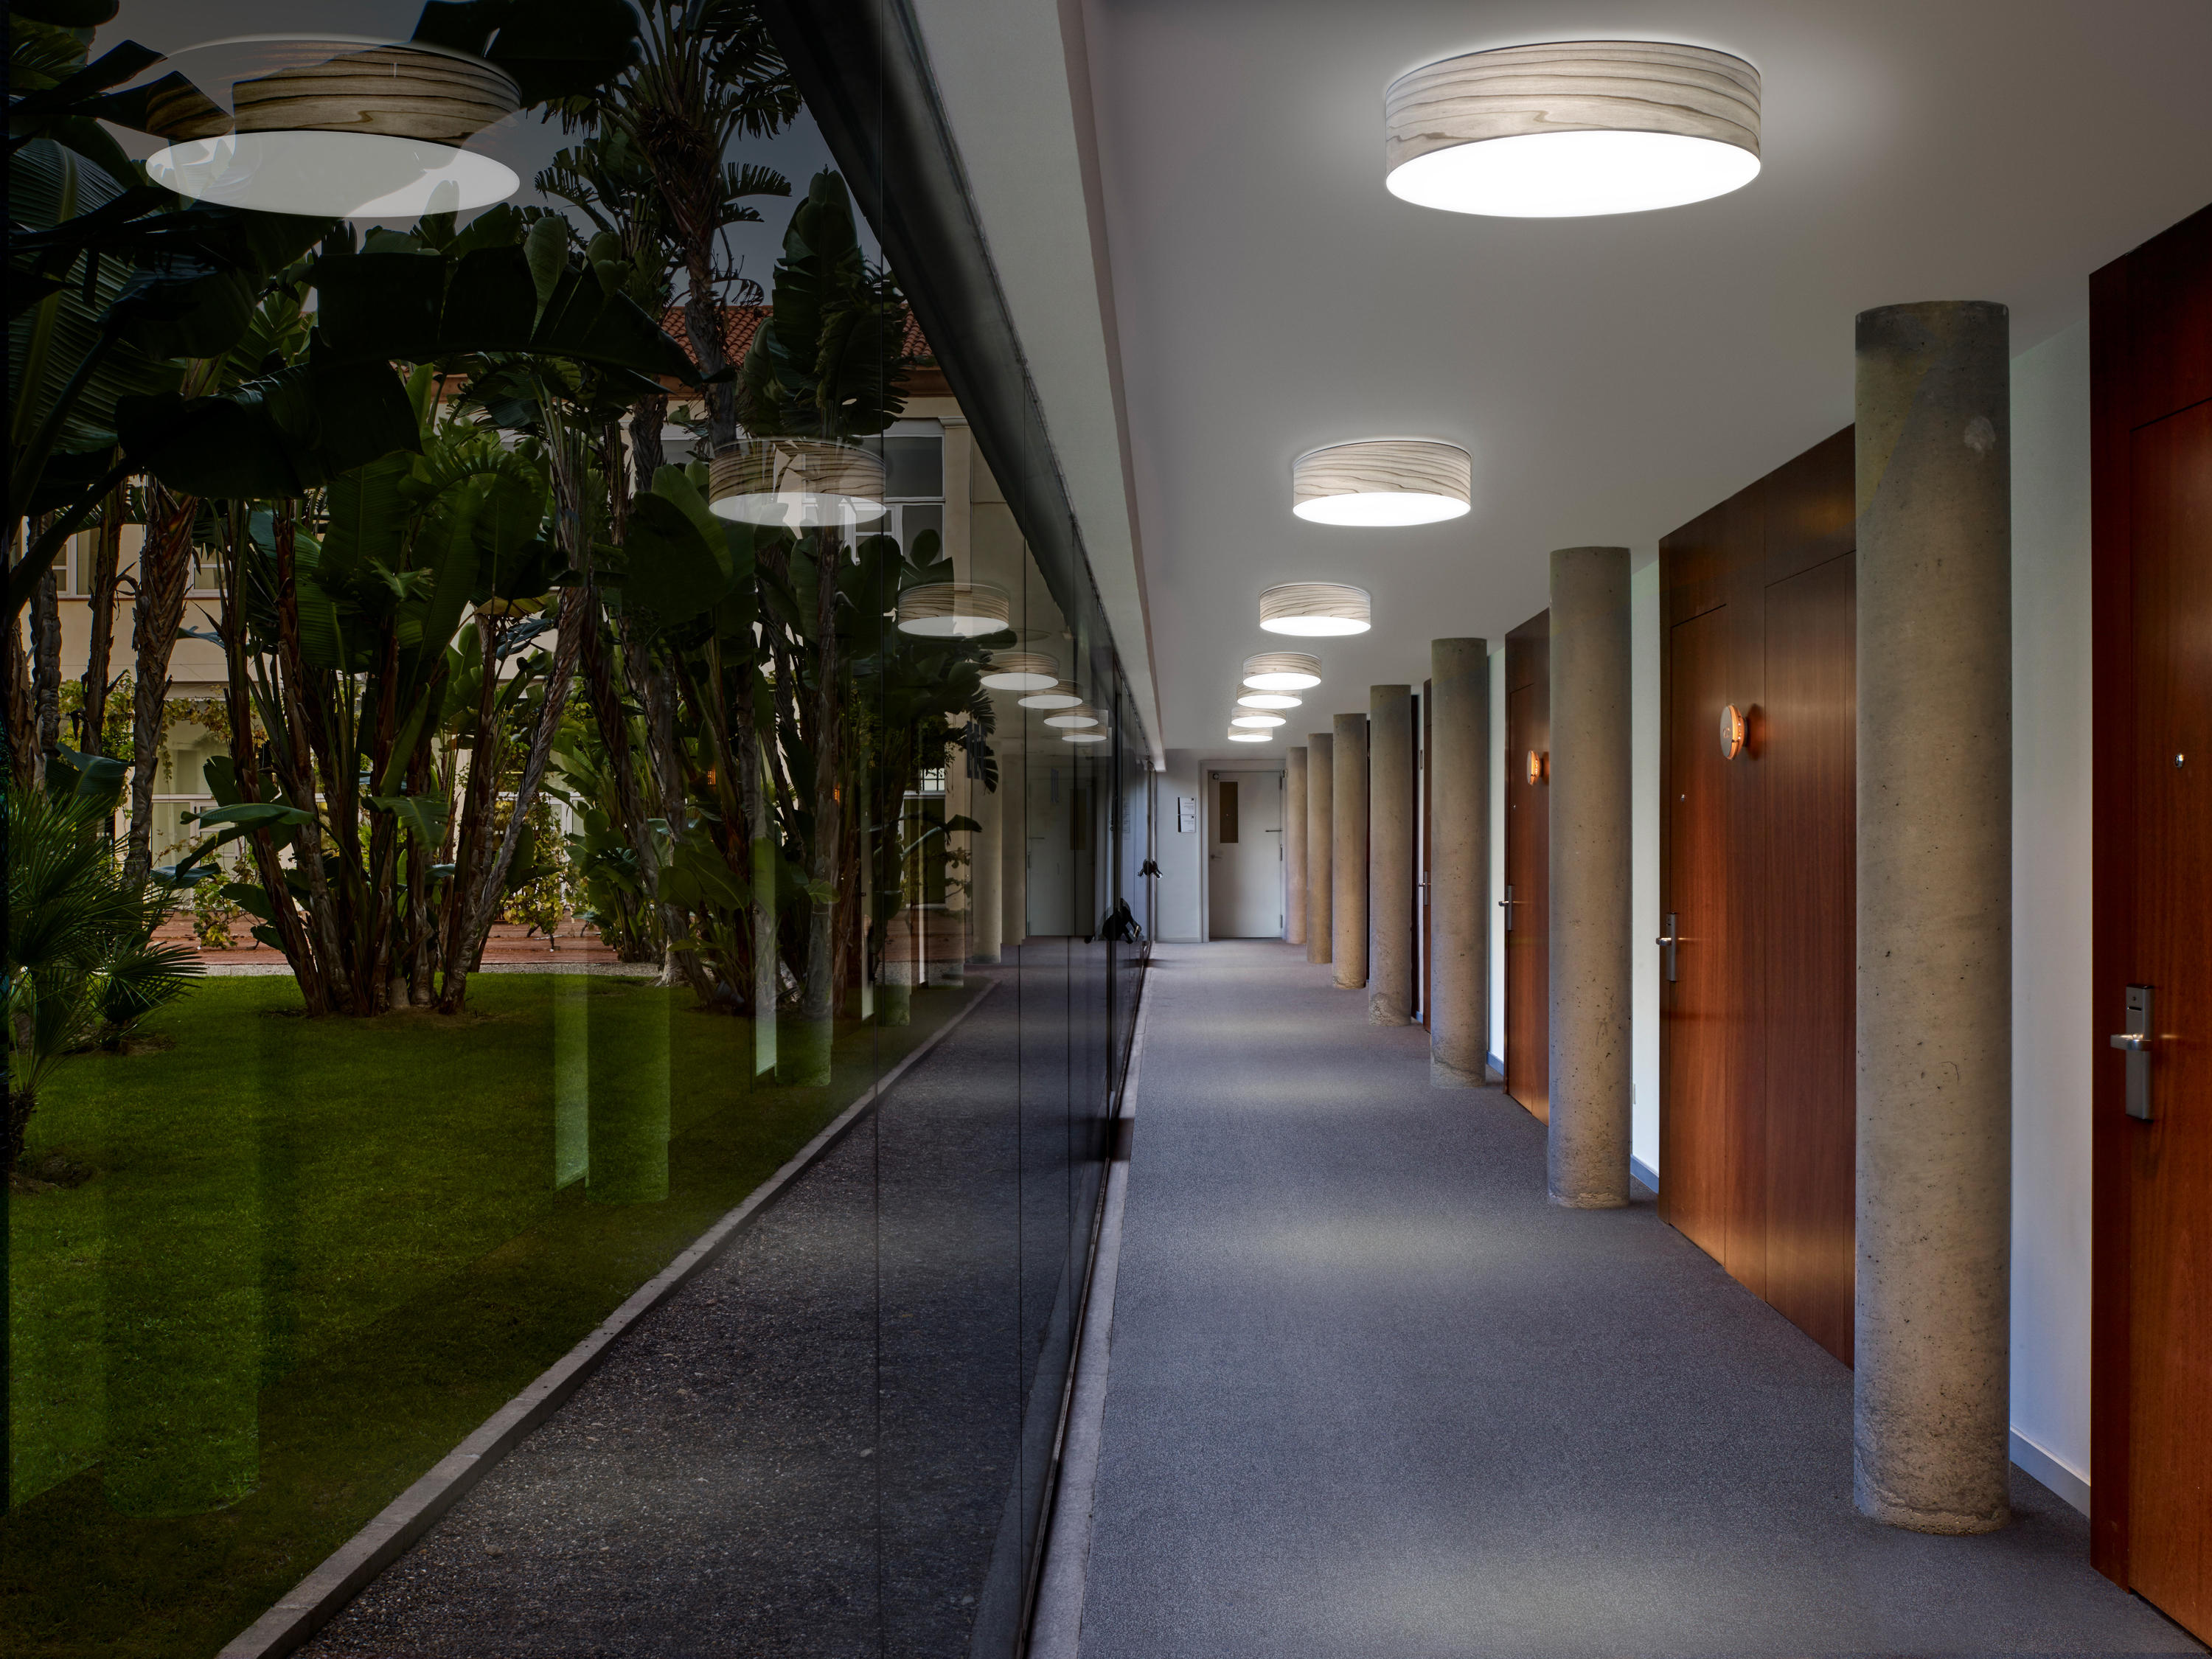 Gea S Suspended Lights From Lzf Architonic